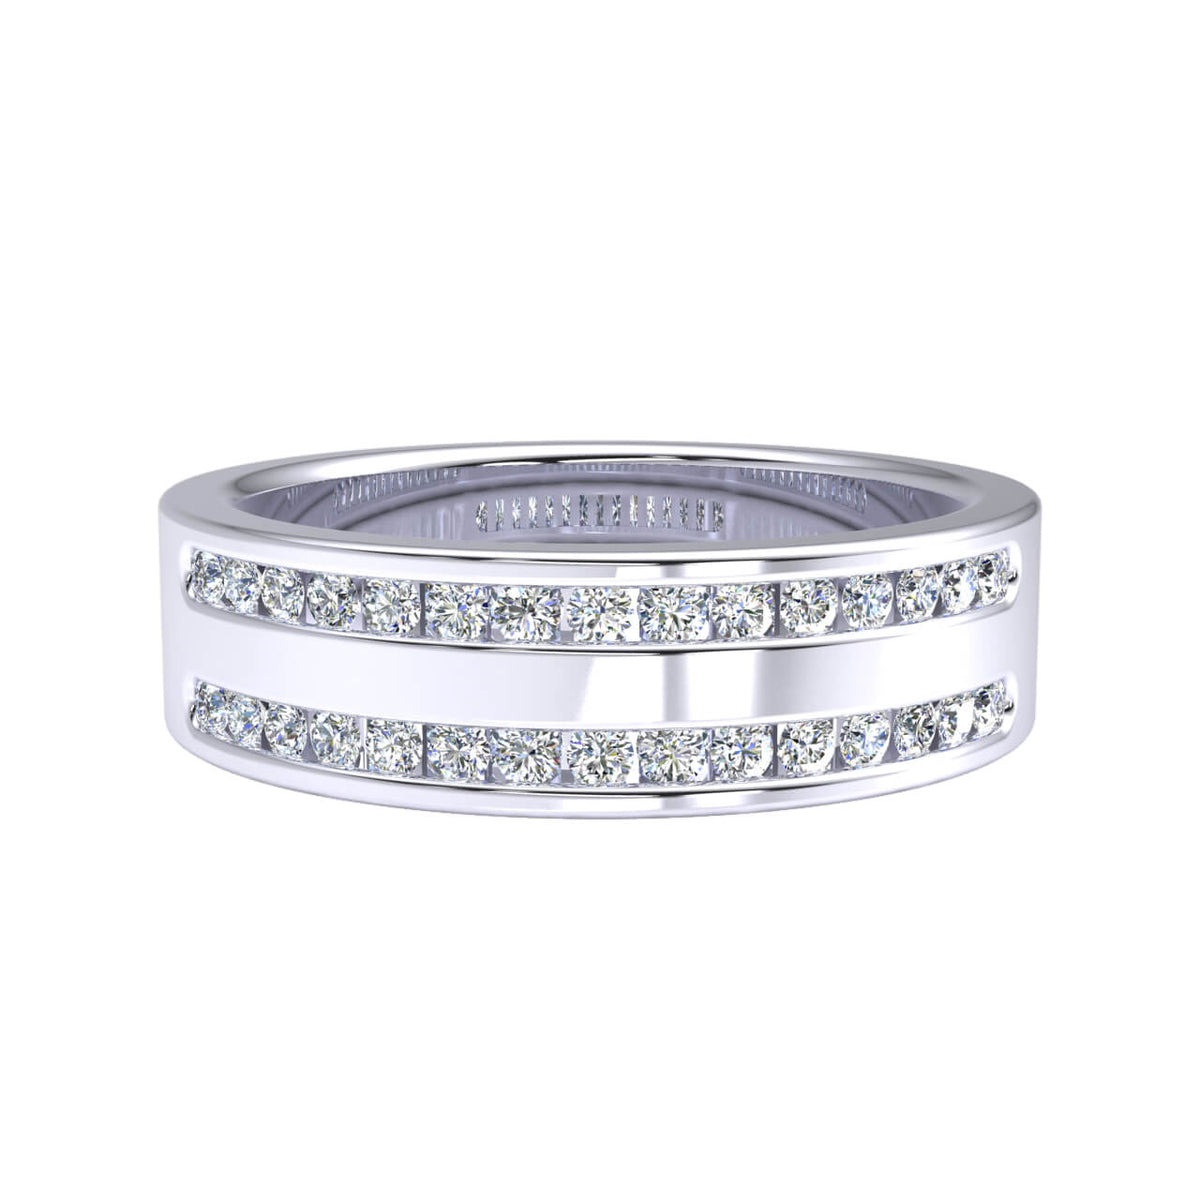 0.45 Ct Round GH I1-I2 Diamond 2 Row Fancy Wedding Band For Men 925 Silver